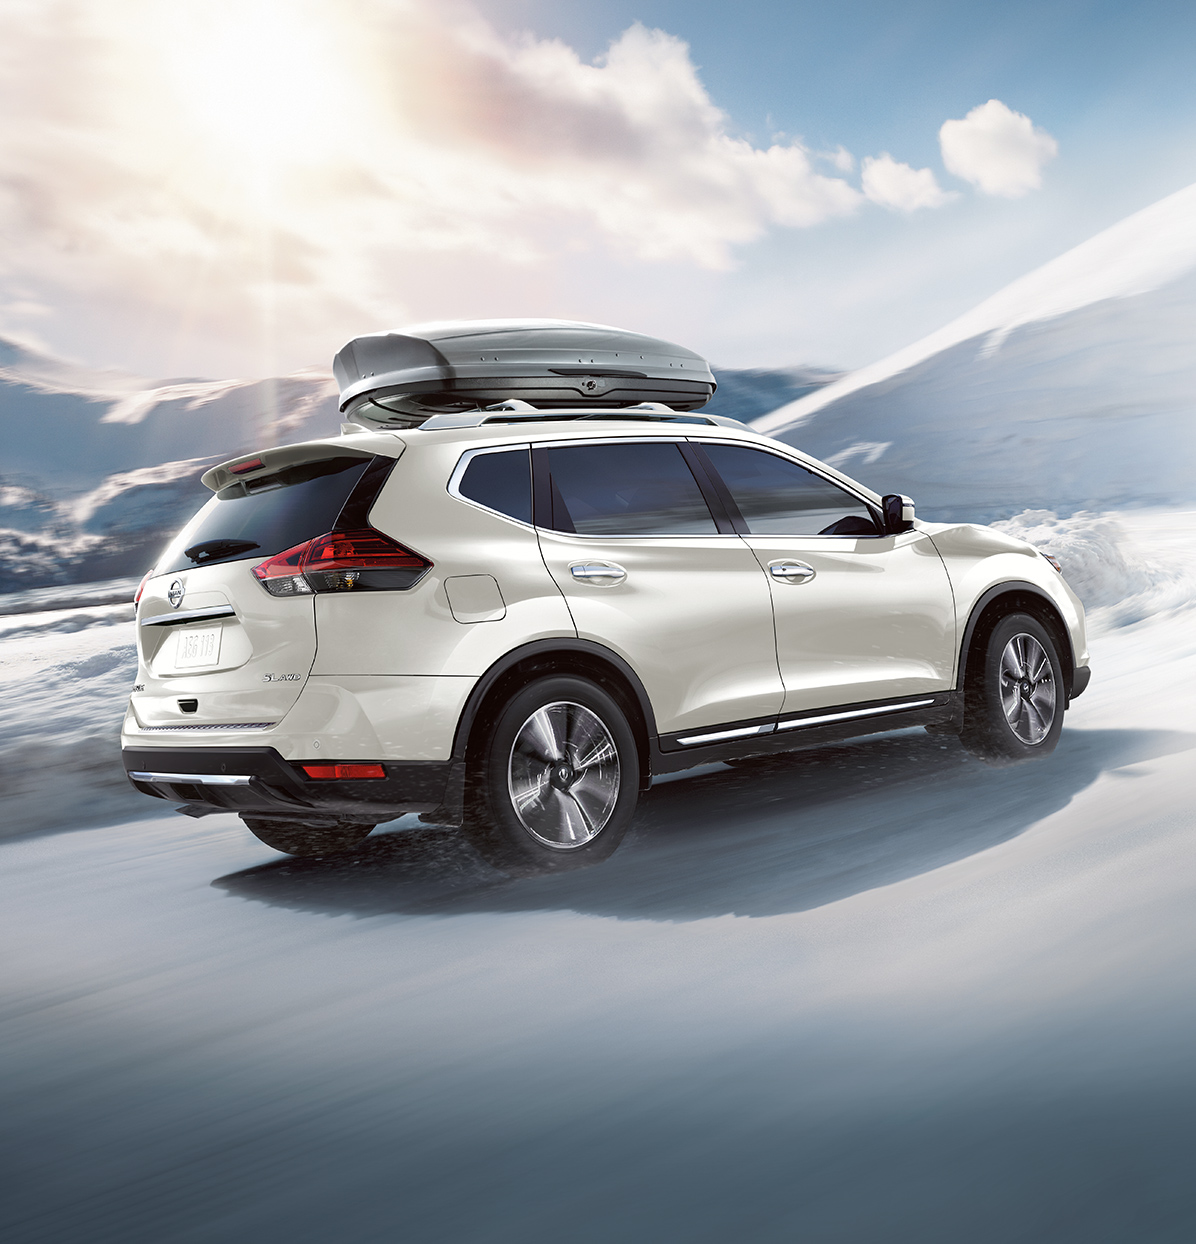 Does The Nissan Rogue Have Awd